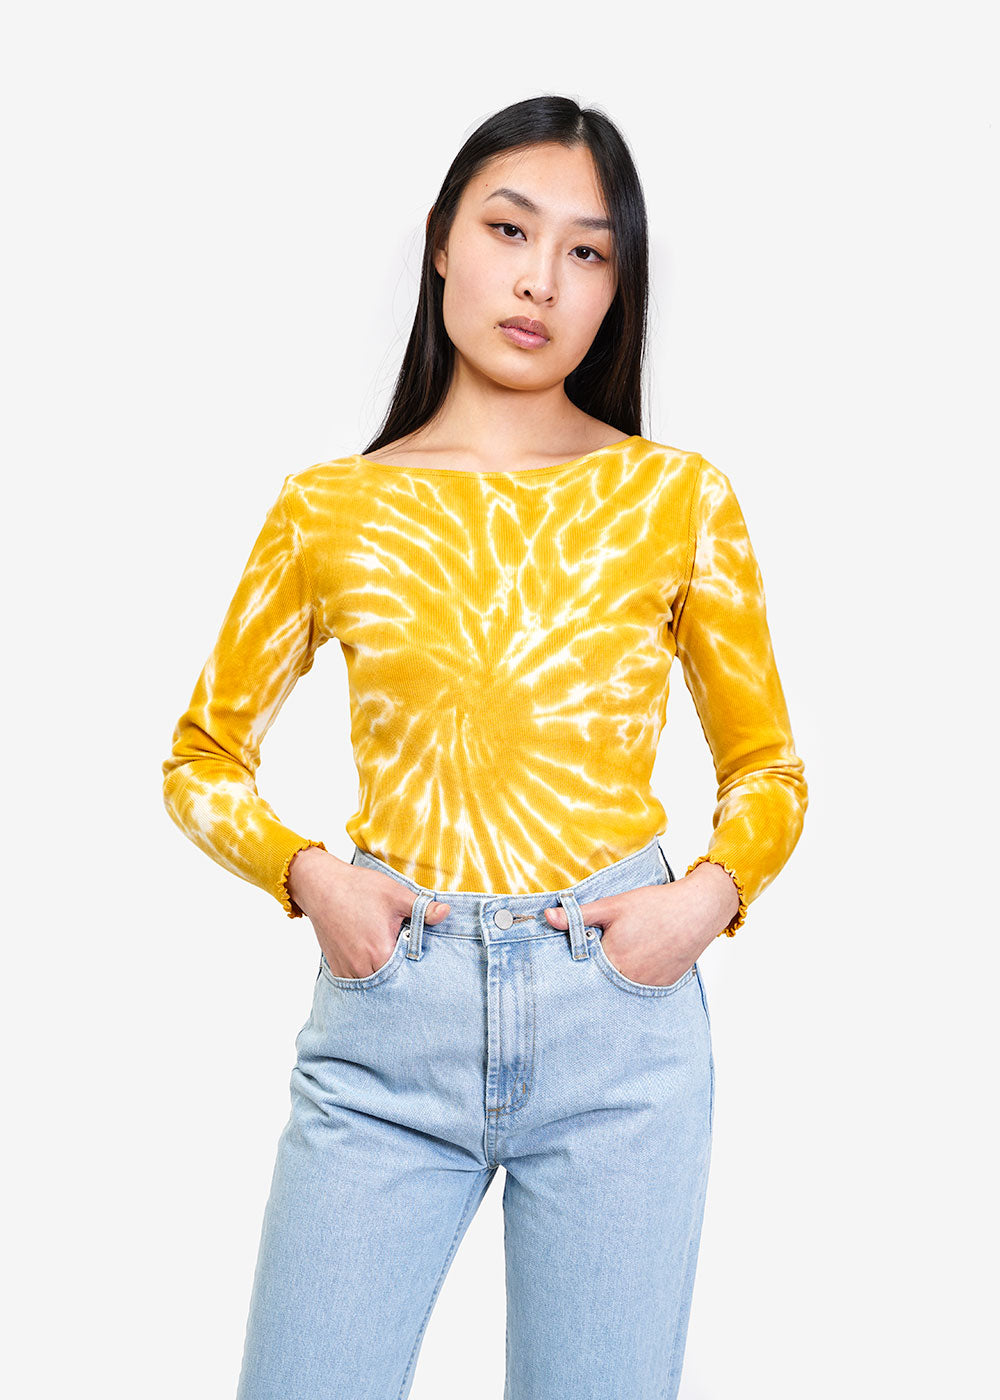 Paloma Wool Yellow Flor Shirt — Shop sustainable fashion and slow fashion at New Classics Studios